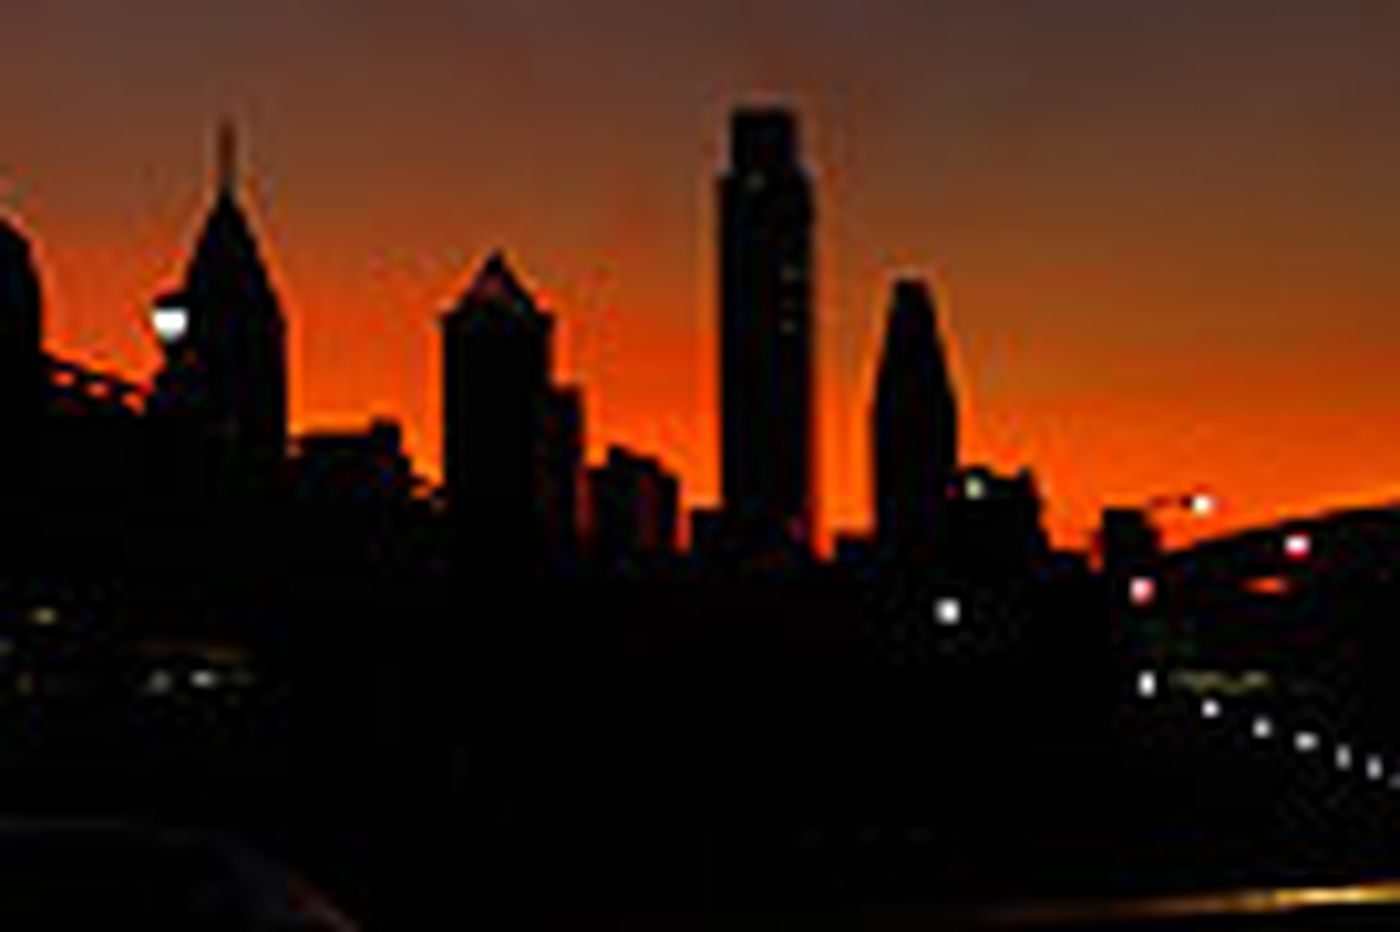 PhillyInc: Region on the rise in new economic ranking